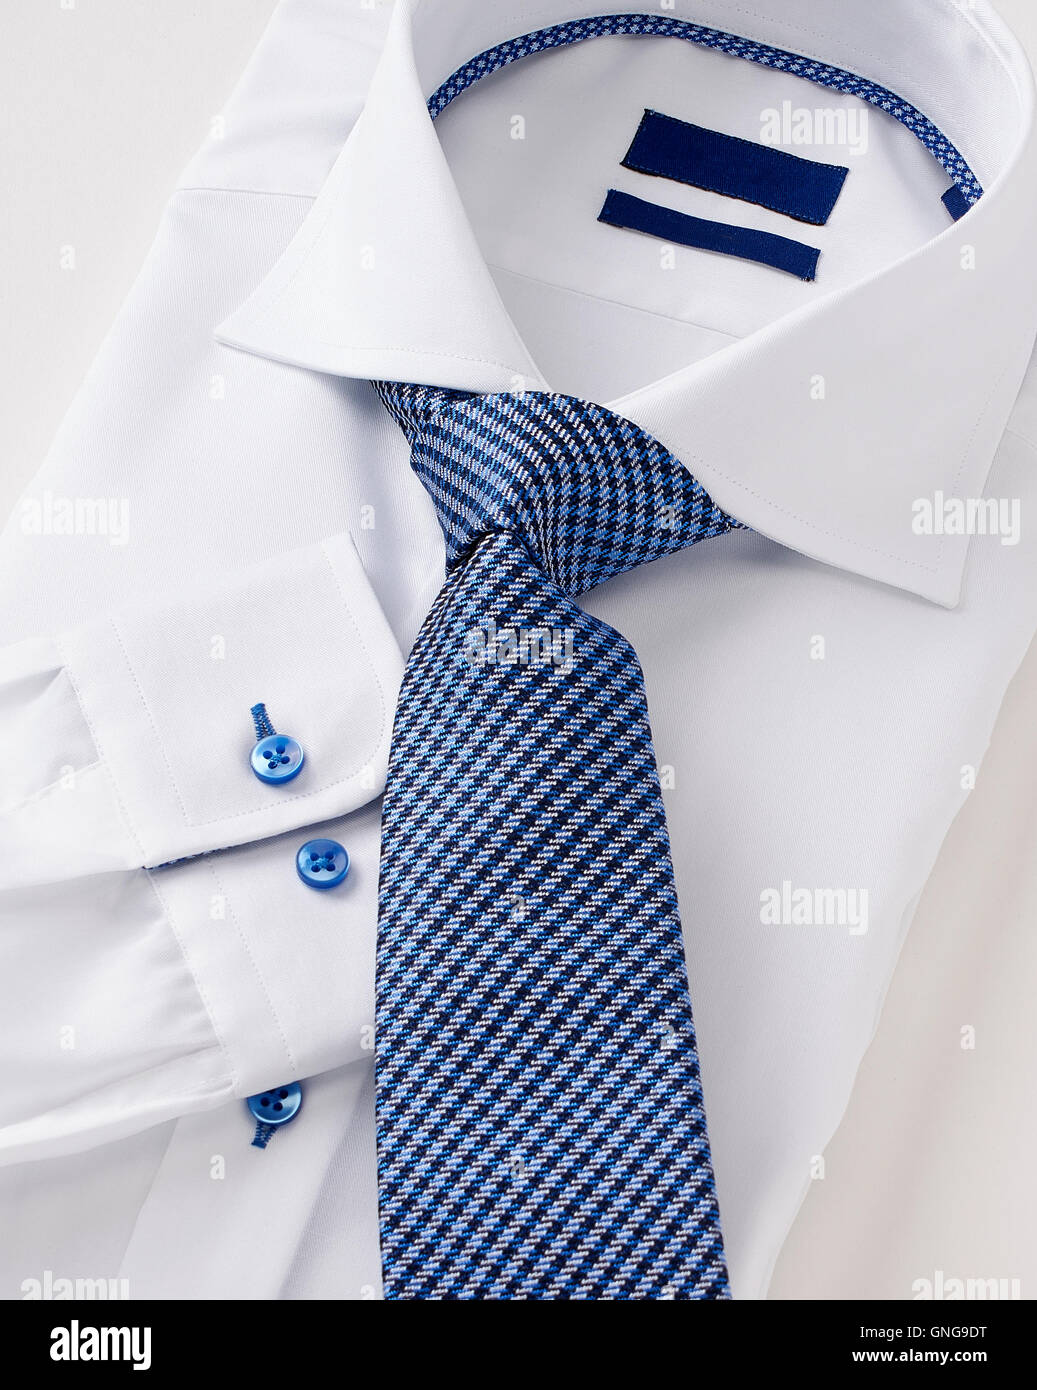 men shirt clothing with tie on white. - Stock Image